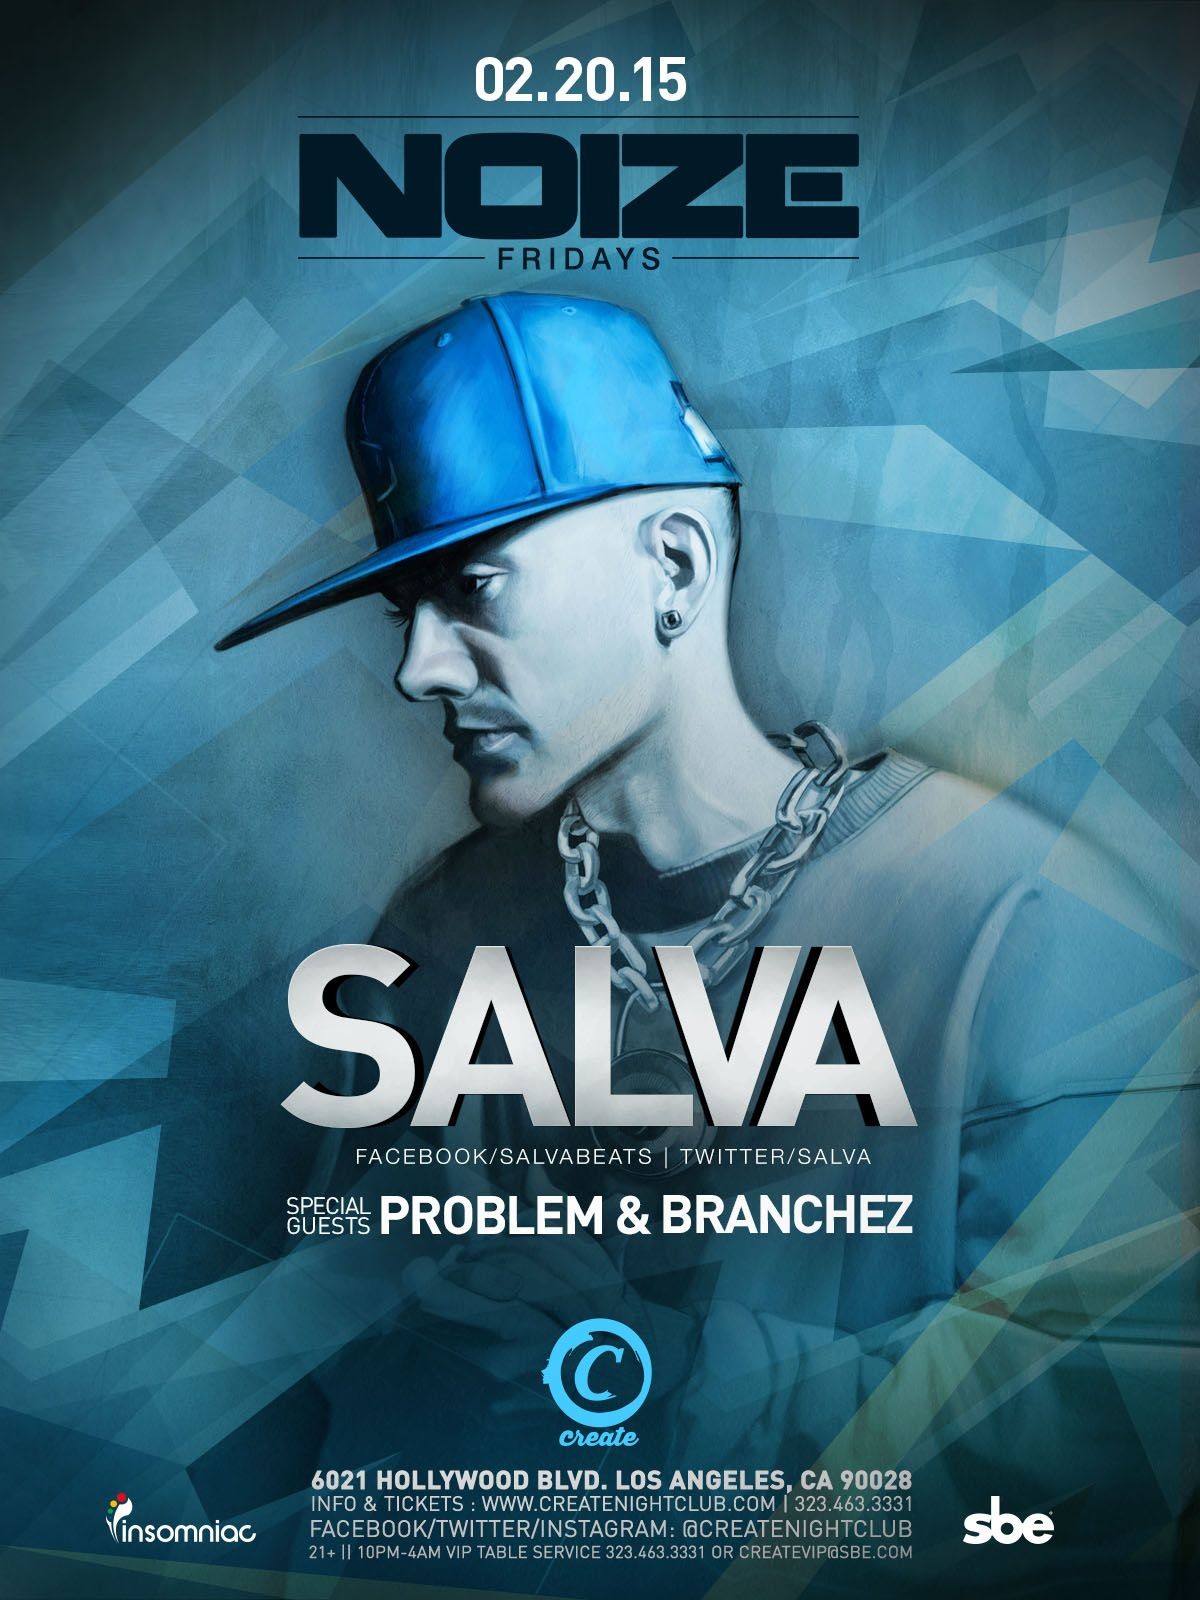 NOIZE FRIDAYS SALVA Event, Insomniac, Hollywood